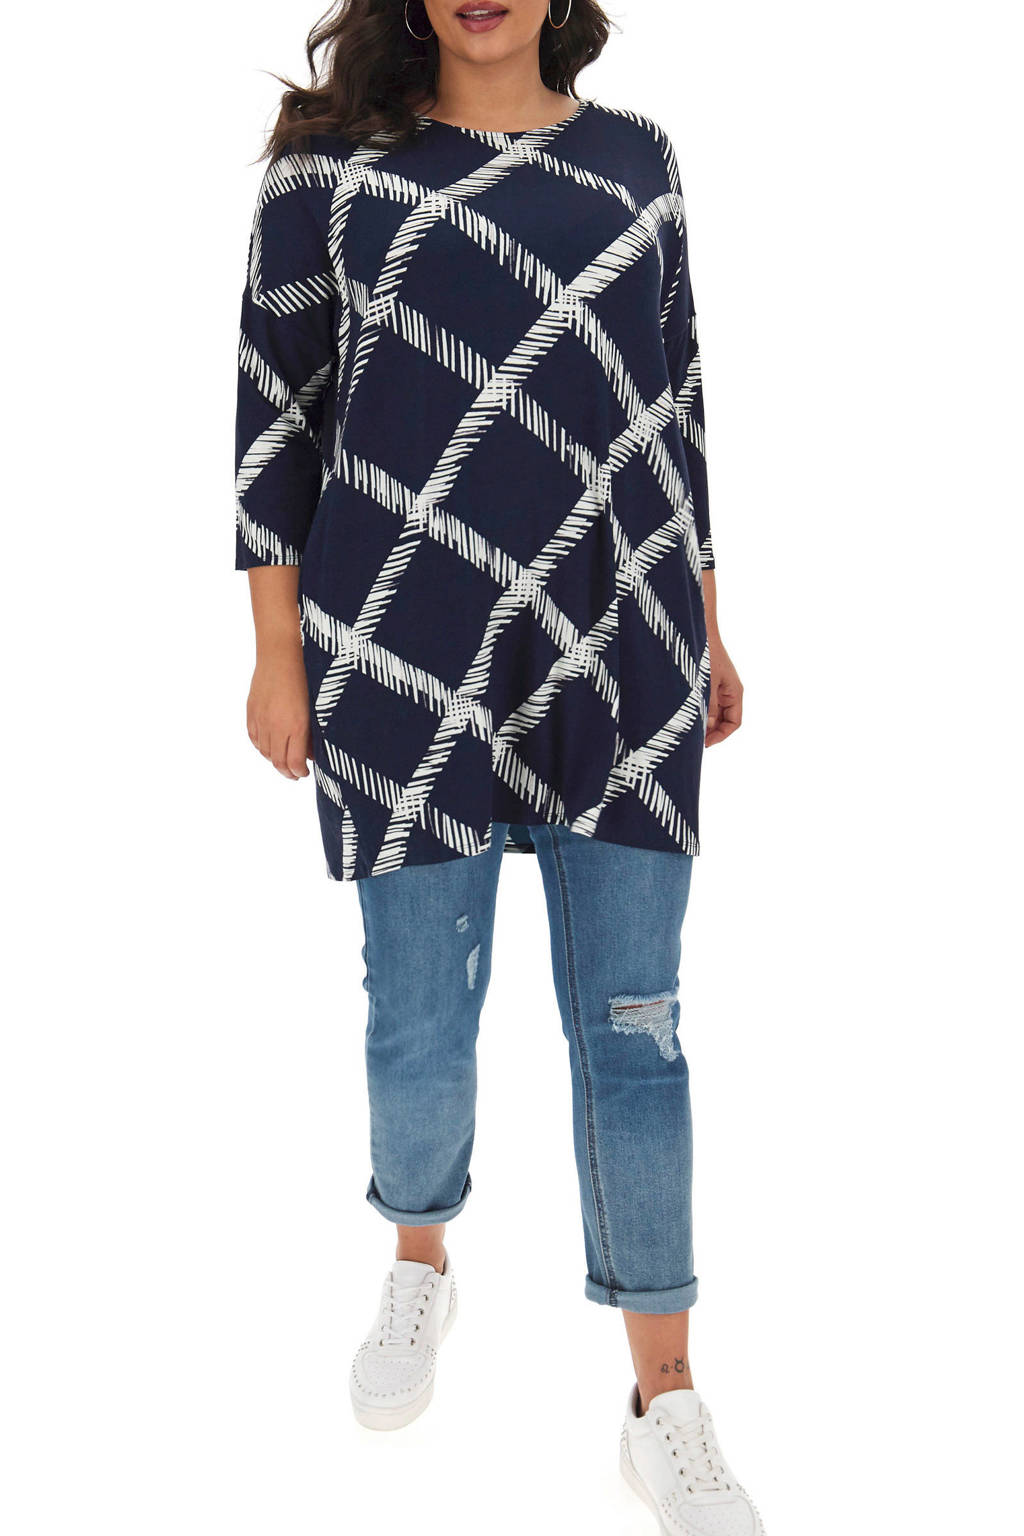 Simply Be tuniek met all over print donkerblauw/wit, Donkerblauw/wit